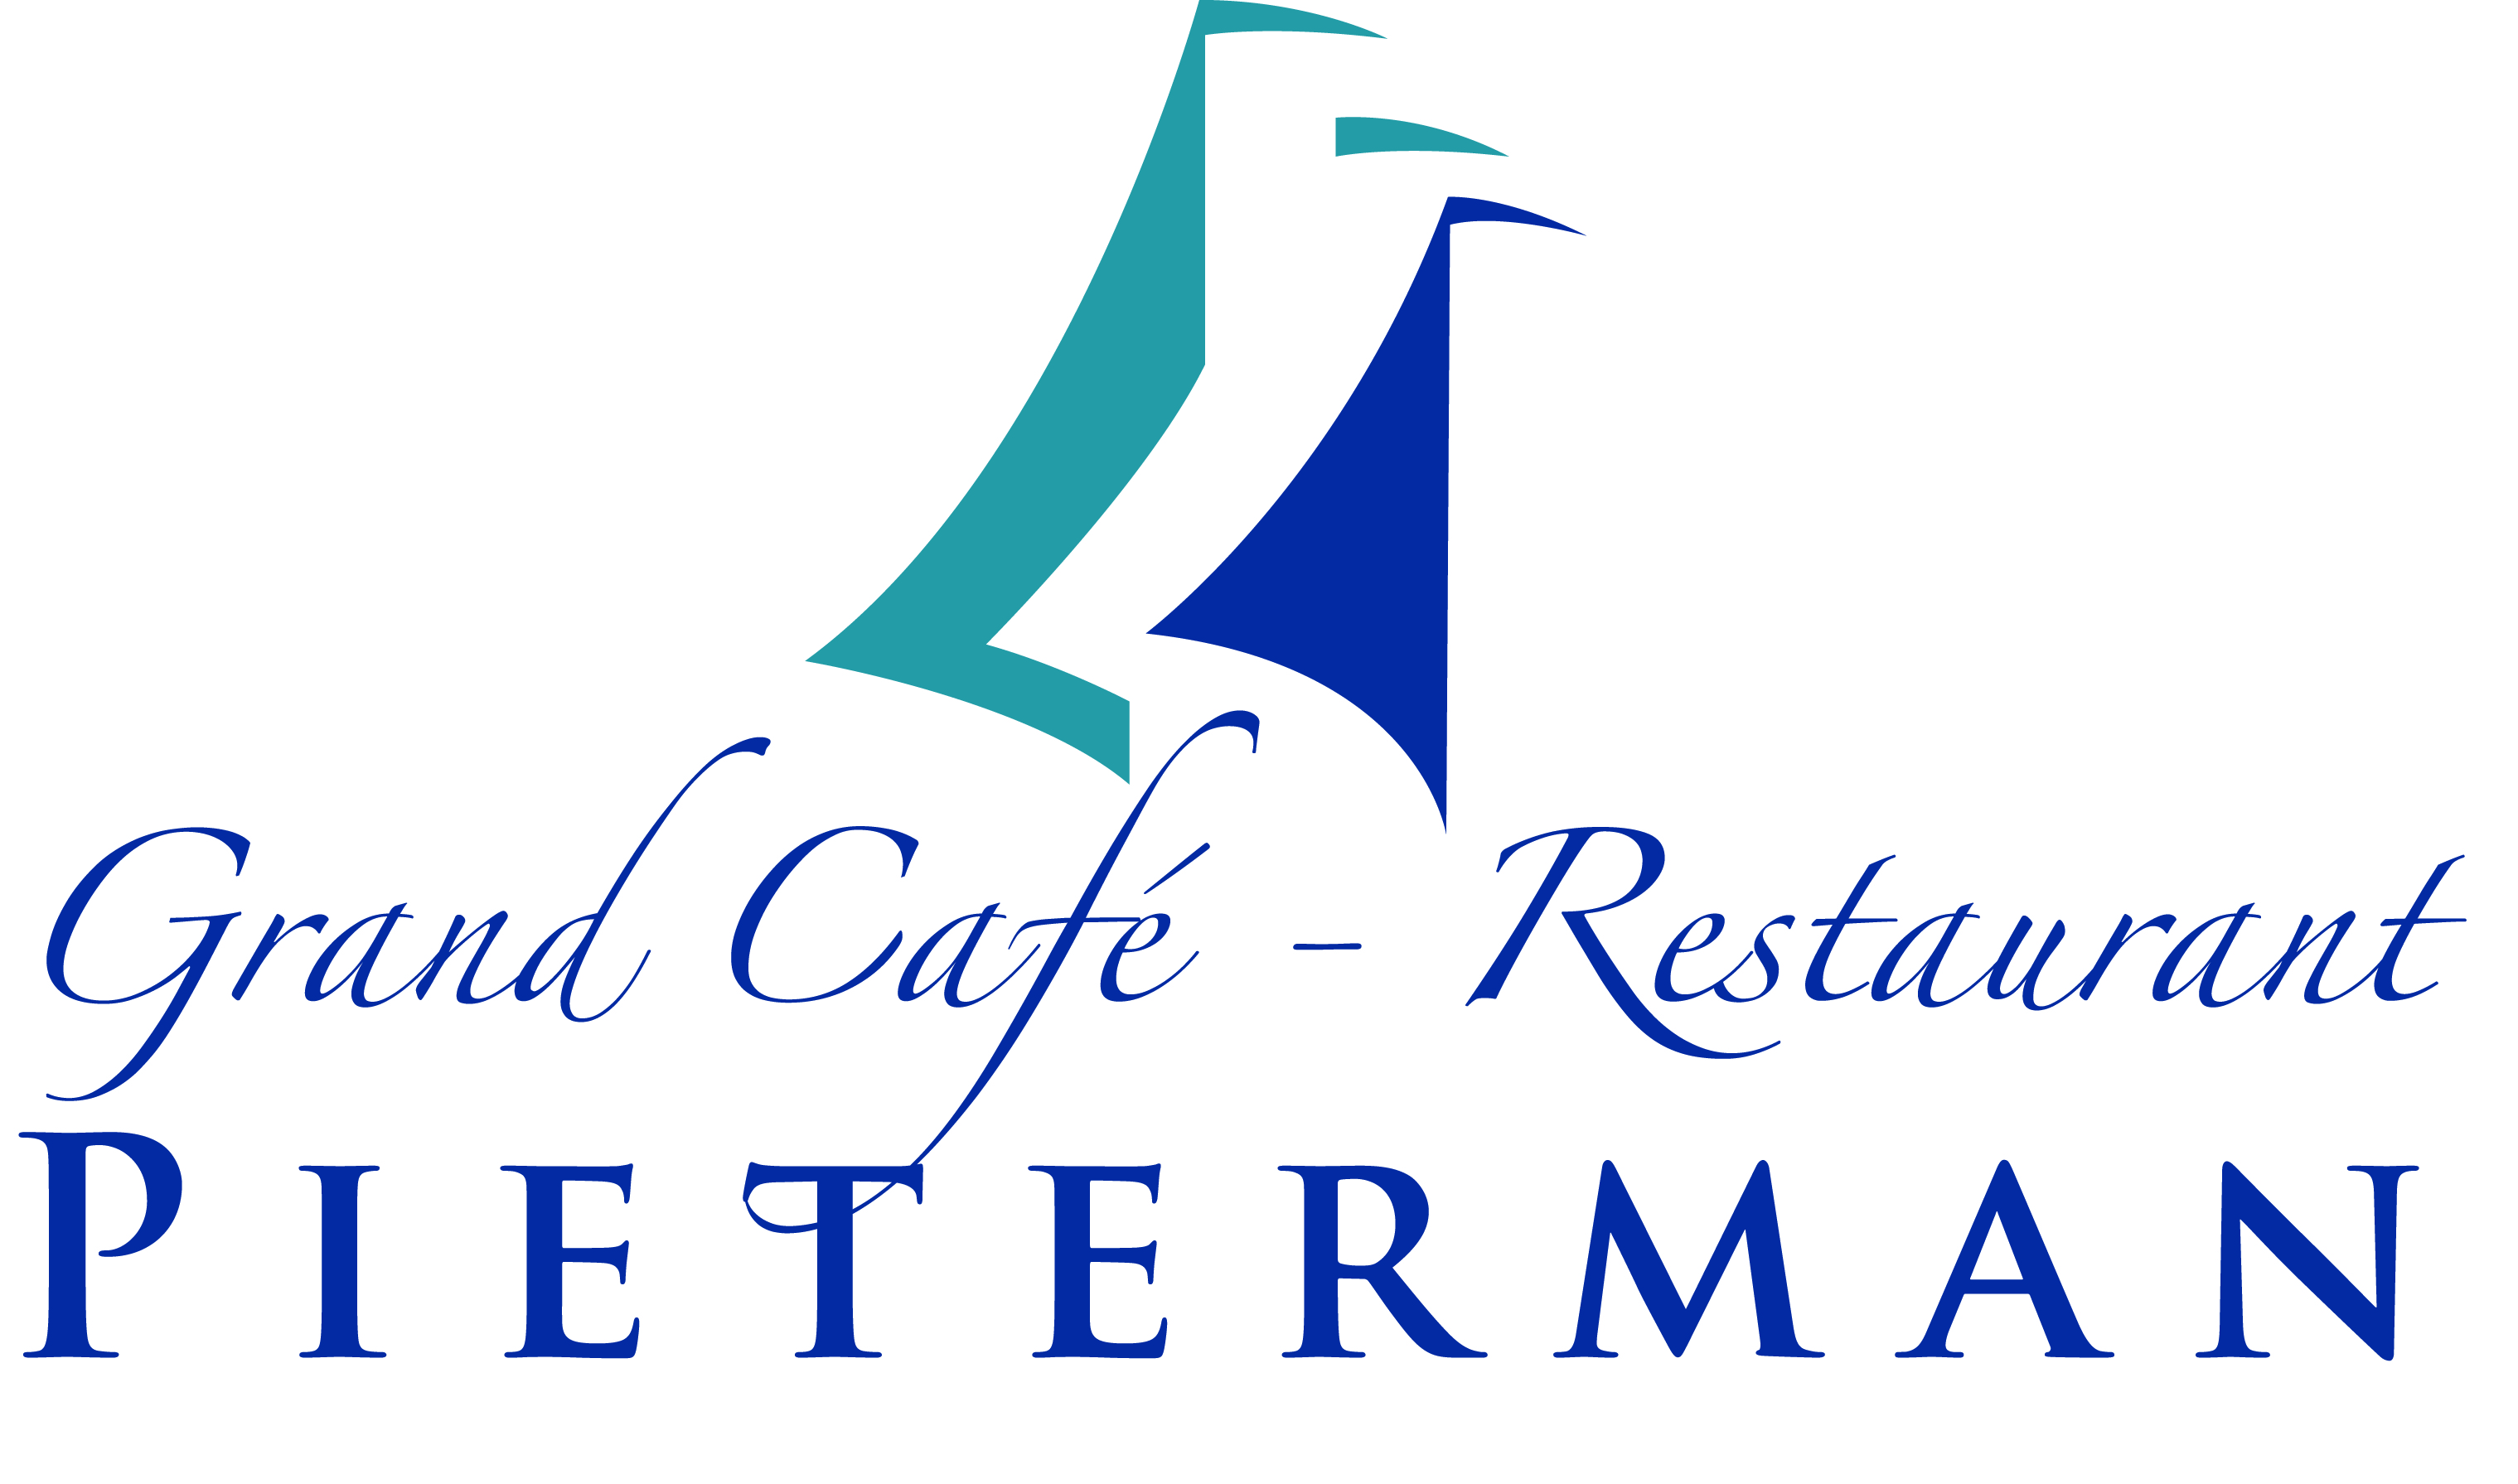 Grand Cafe Restaurant Pieterman